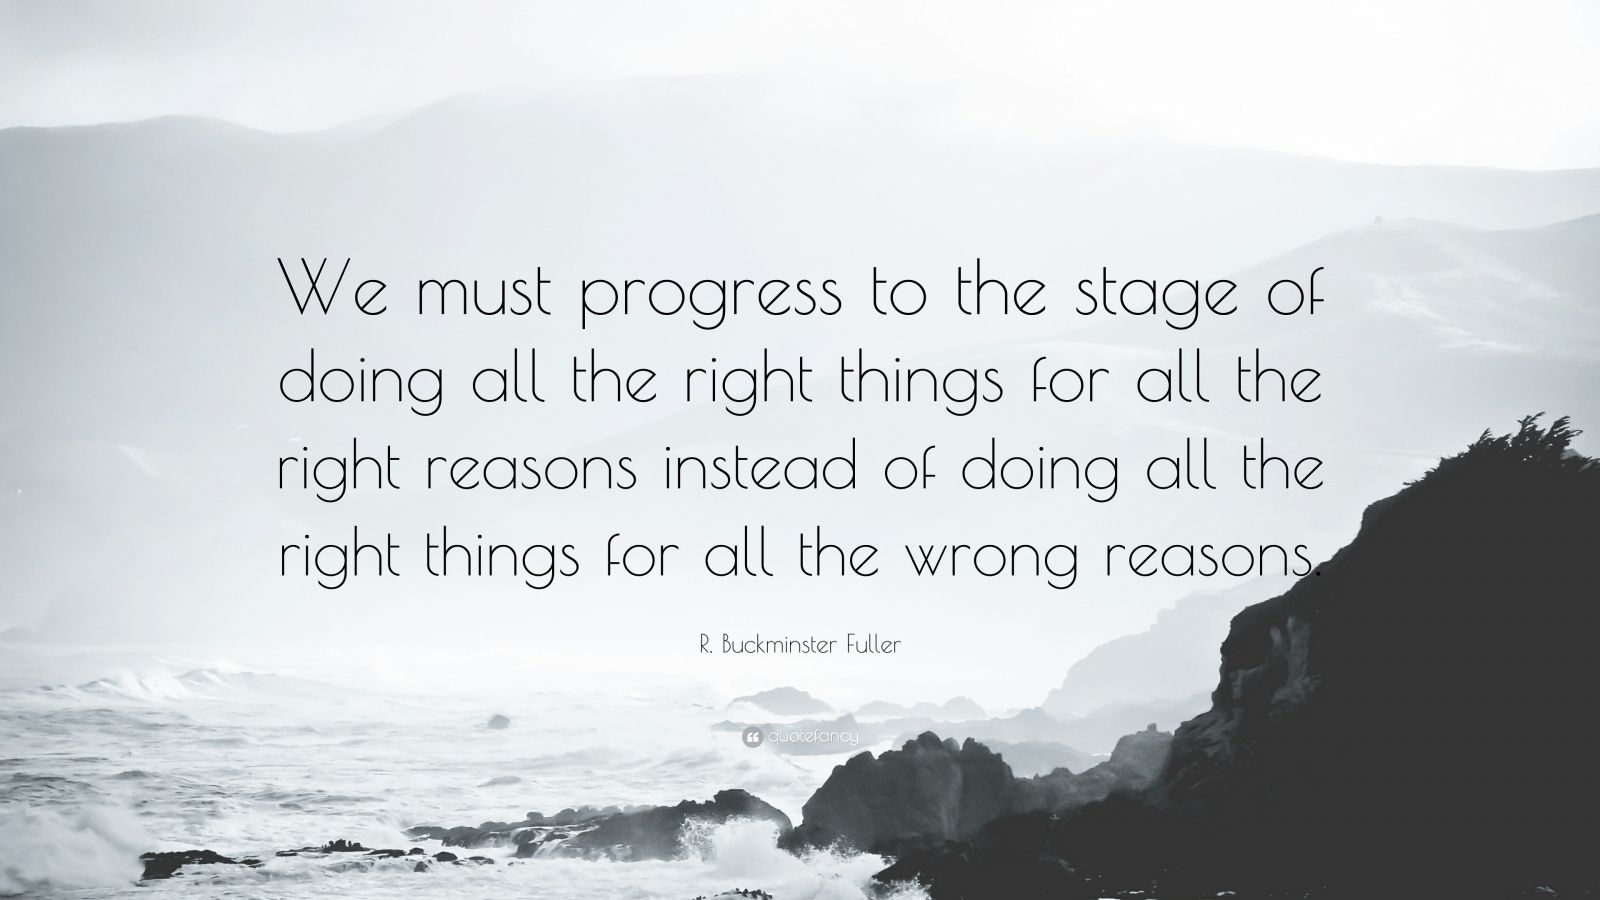 """R. Buckminster Fuller Quote: """"We must progress to the stage of doing all the right things for all the right reasons instead of doing all the right things for all the wrong reasons."""""""